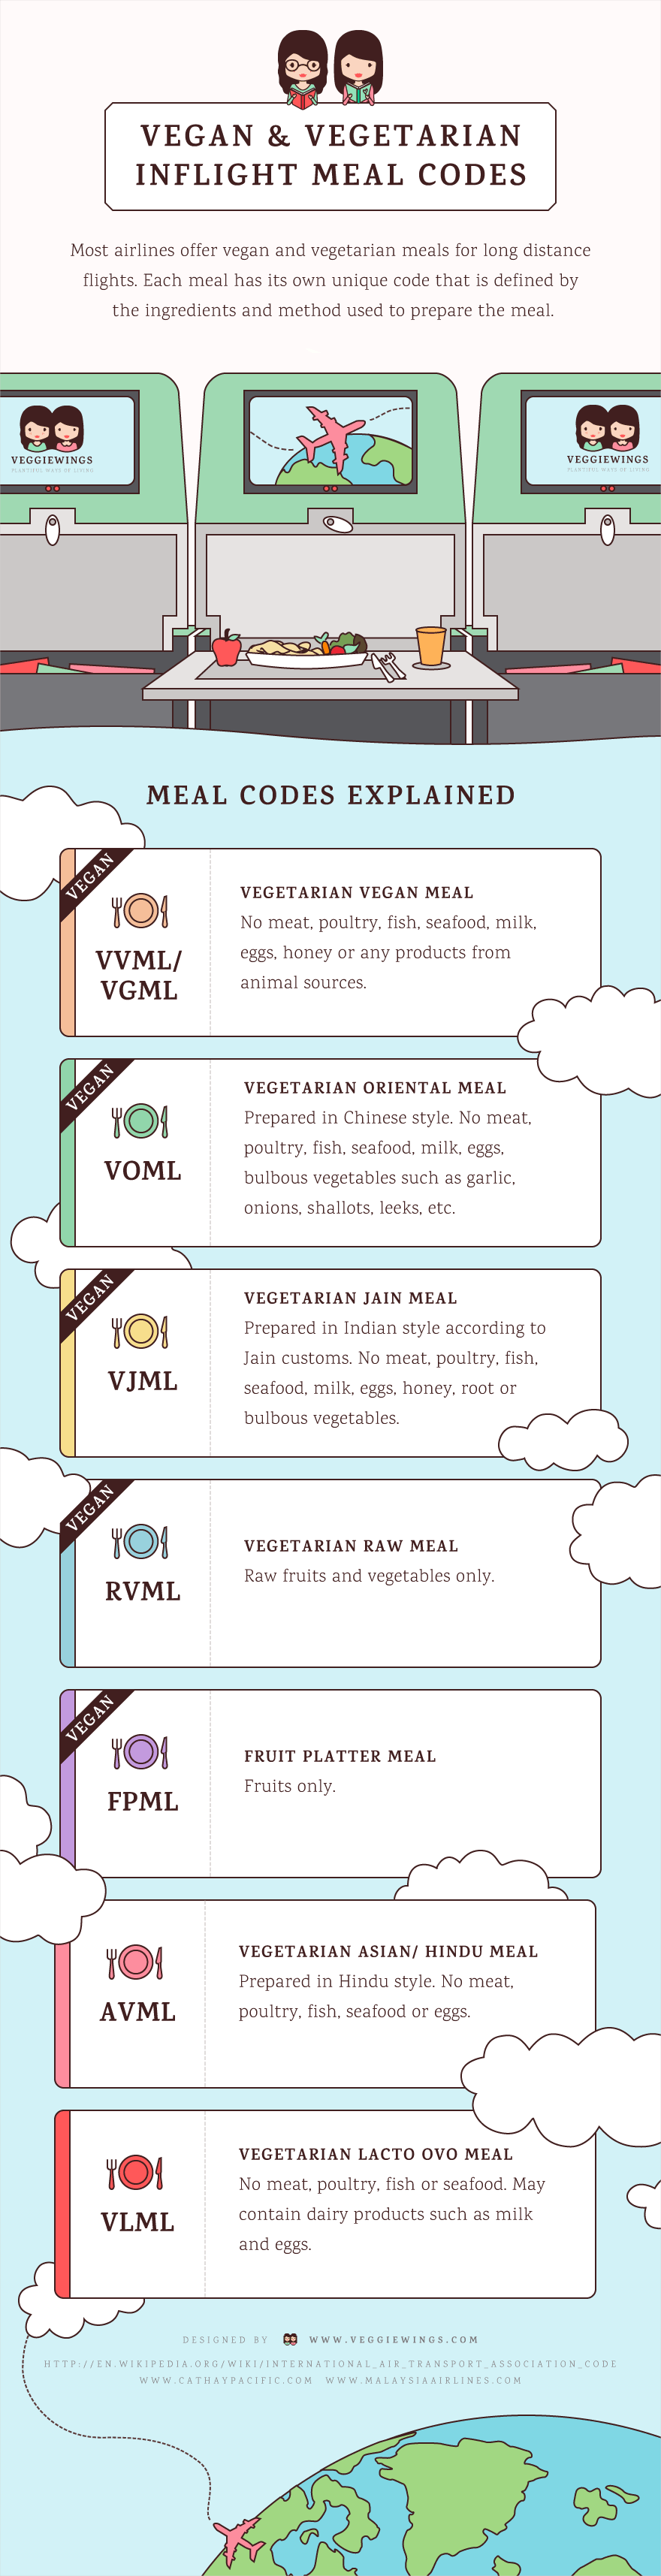 infographic vegan and vegetarian inflight meal codes